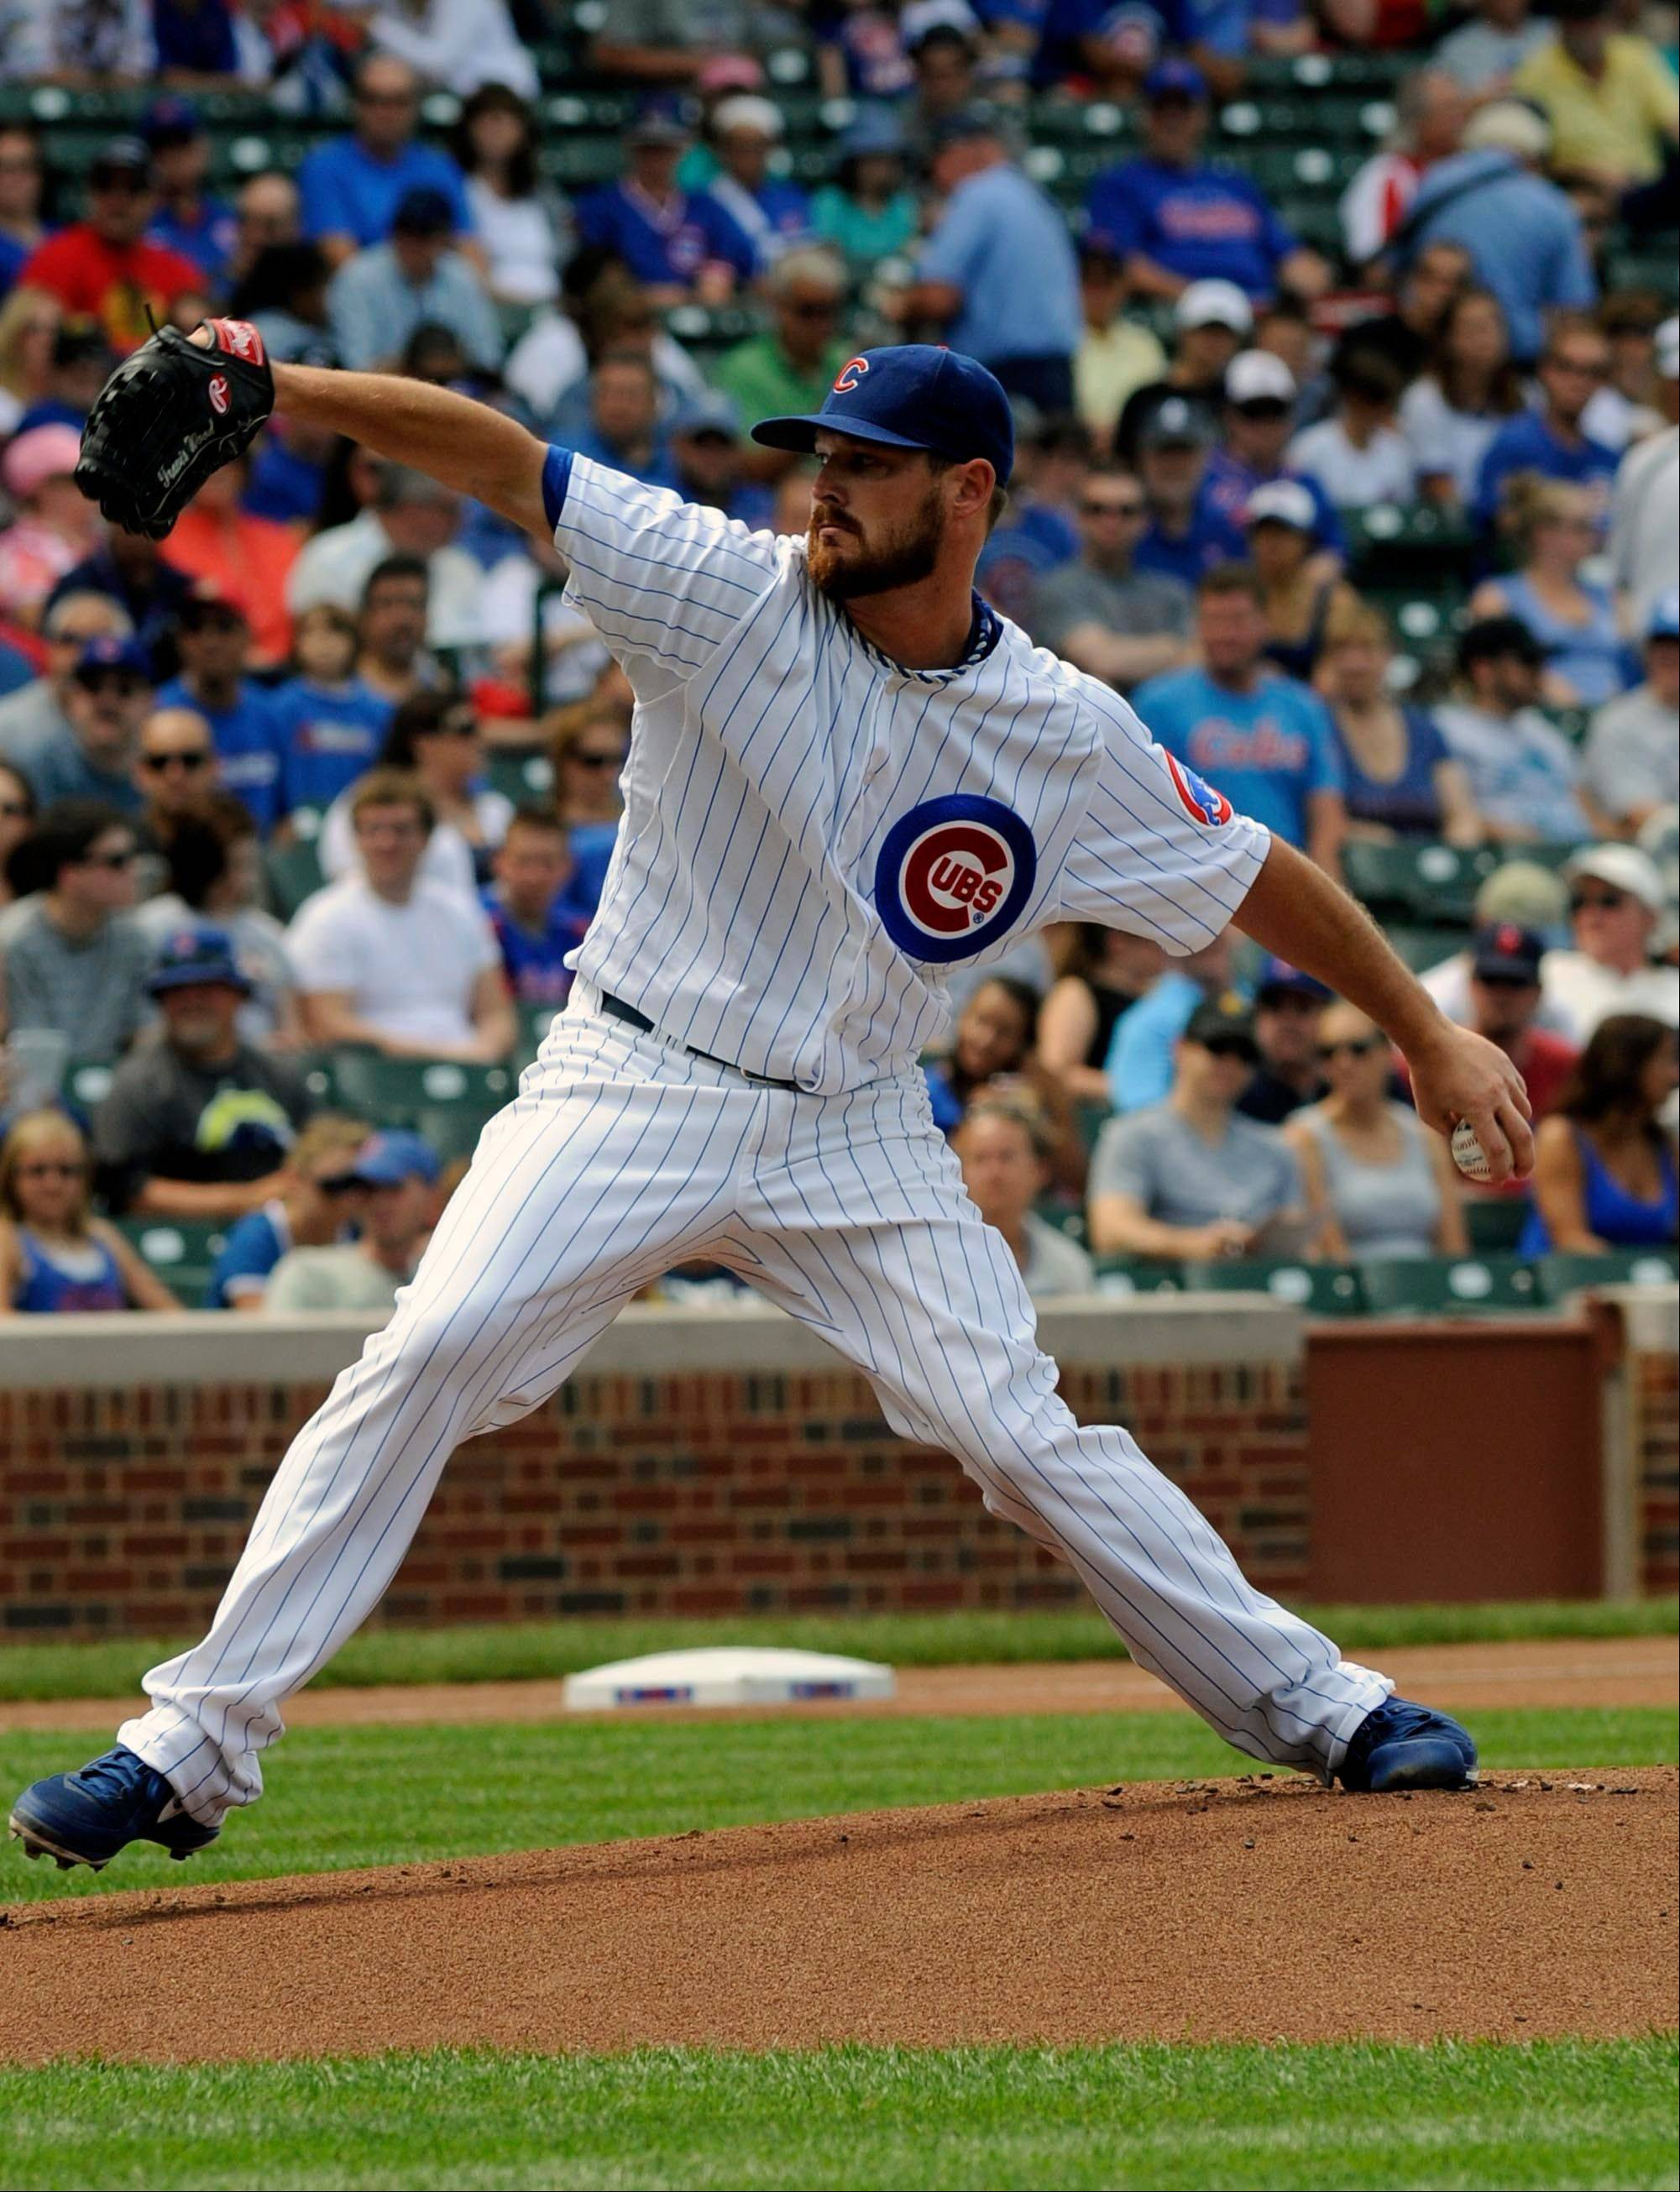 Cubs pitcher Travis Wood recorded his major-league best 14th quality start, but he allowed a 3-run homer in the sixth and was not involved in the decision. Despite an ERA of 2.85, Wood has not won since May 30.